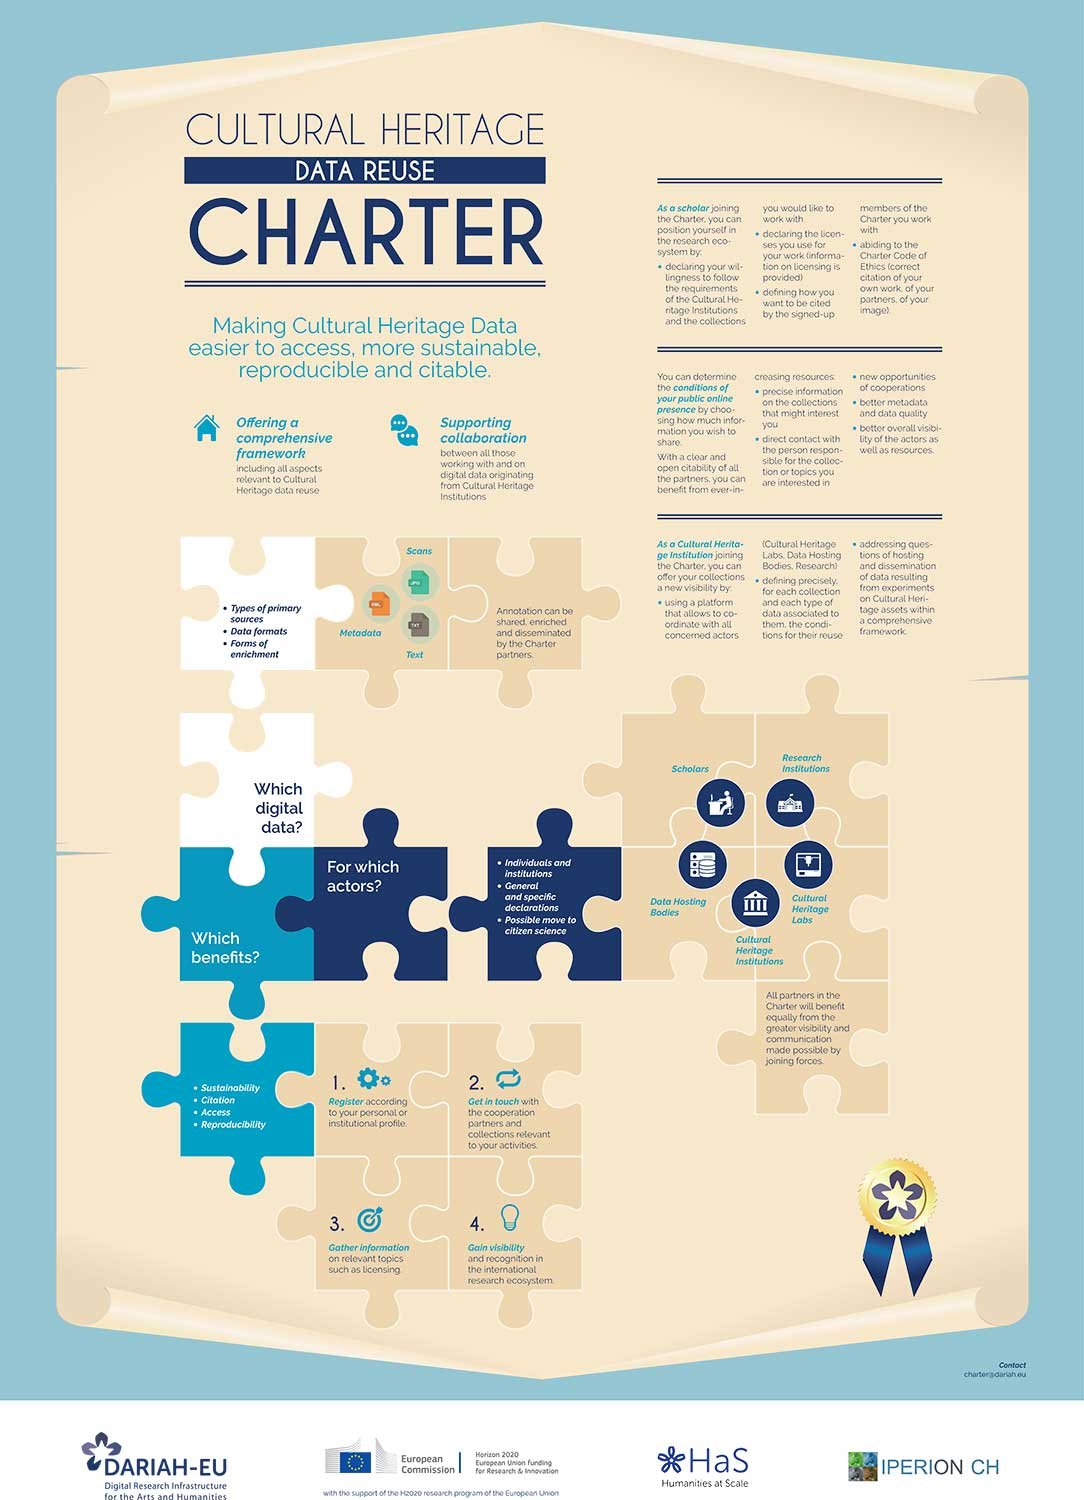 Data re-use charter